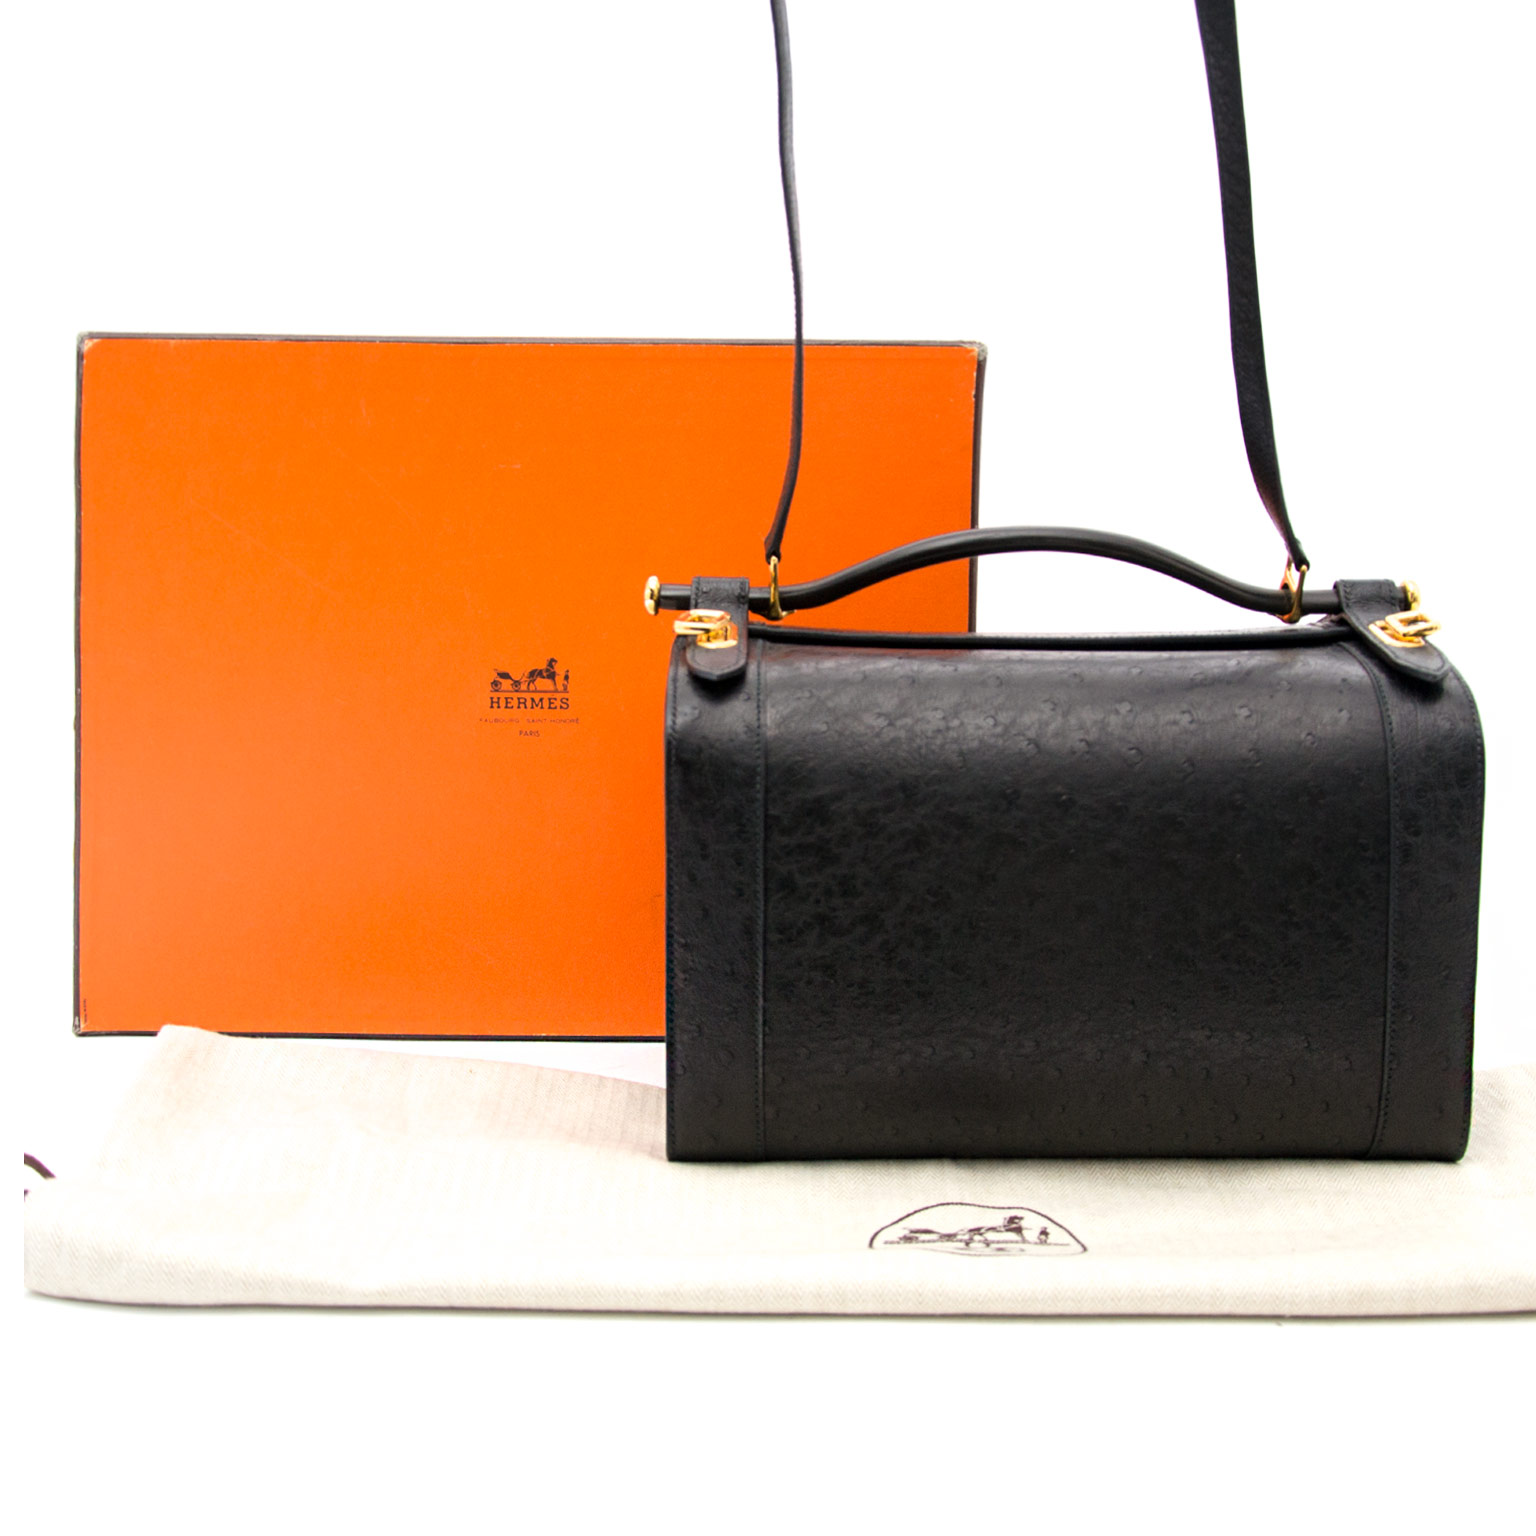 Very Rare Hermès Black Ostrich Sac Mallette Handbag available exclusively online at Labellov timeless luxury in Antwerp